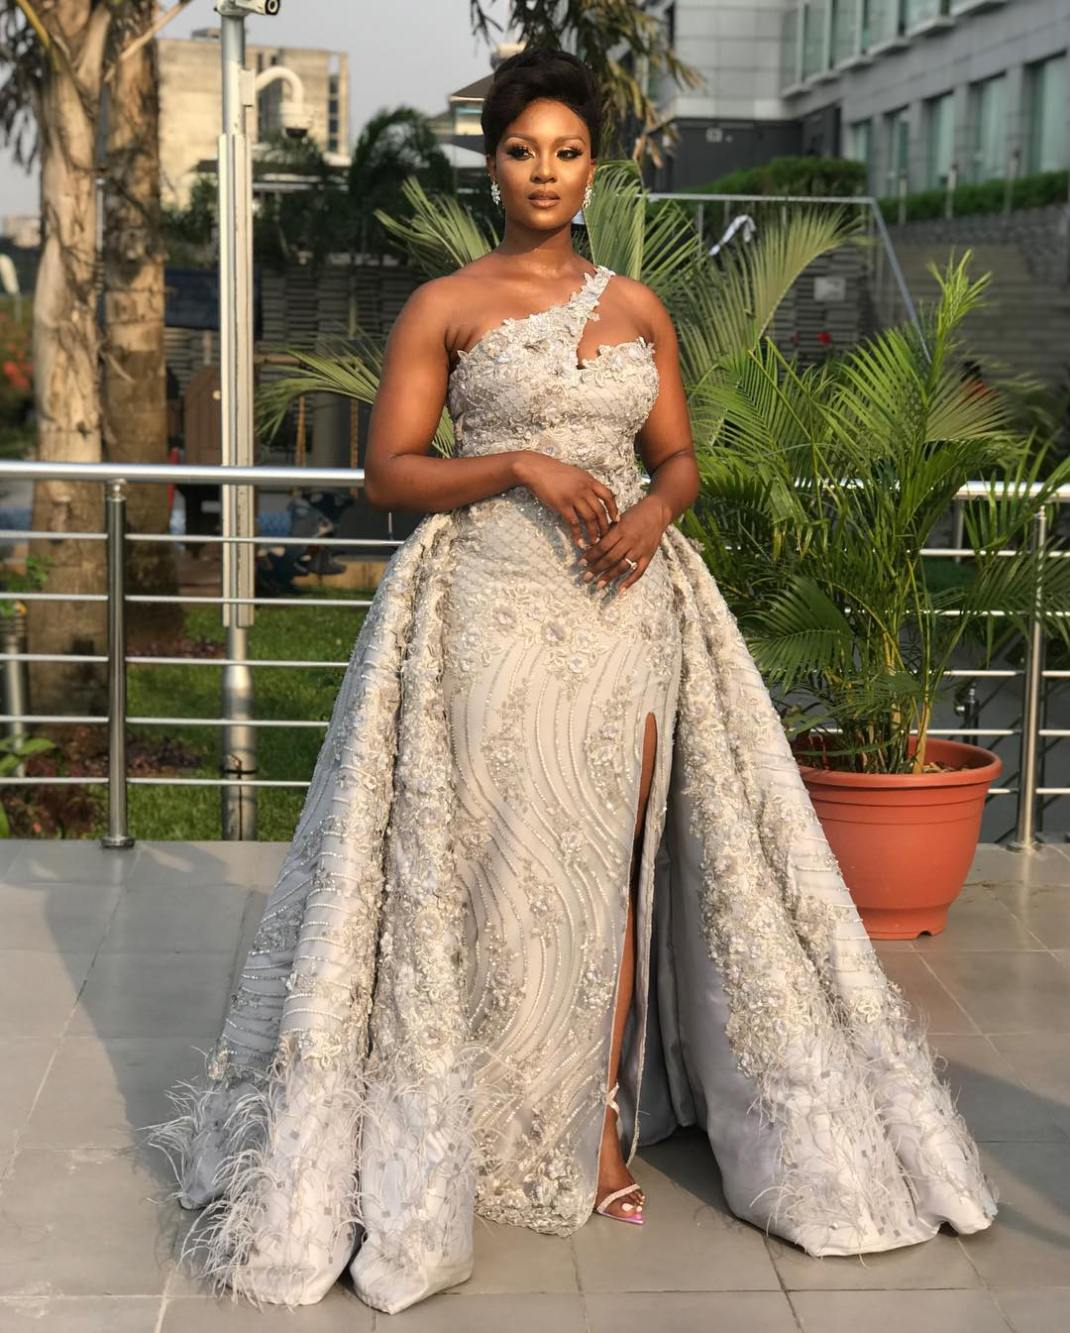 This is what Osas Ighodaro Ajibade wore to the Film Gala